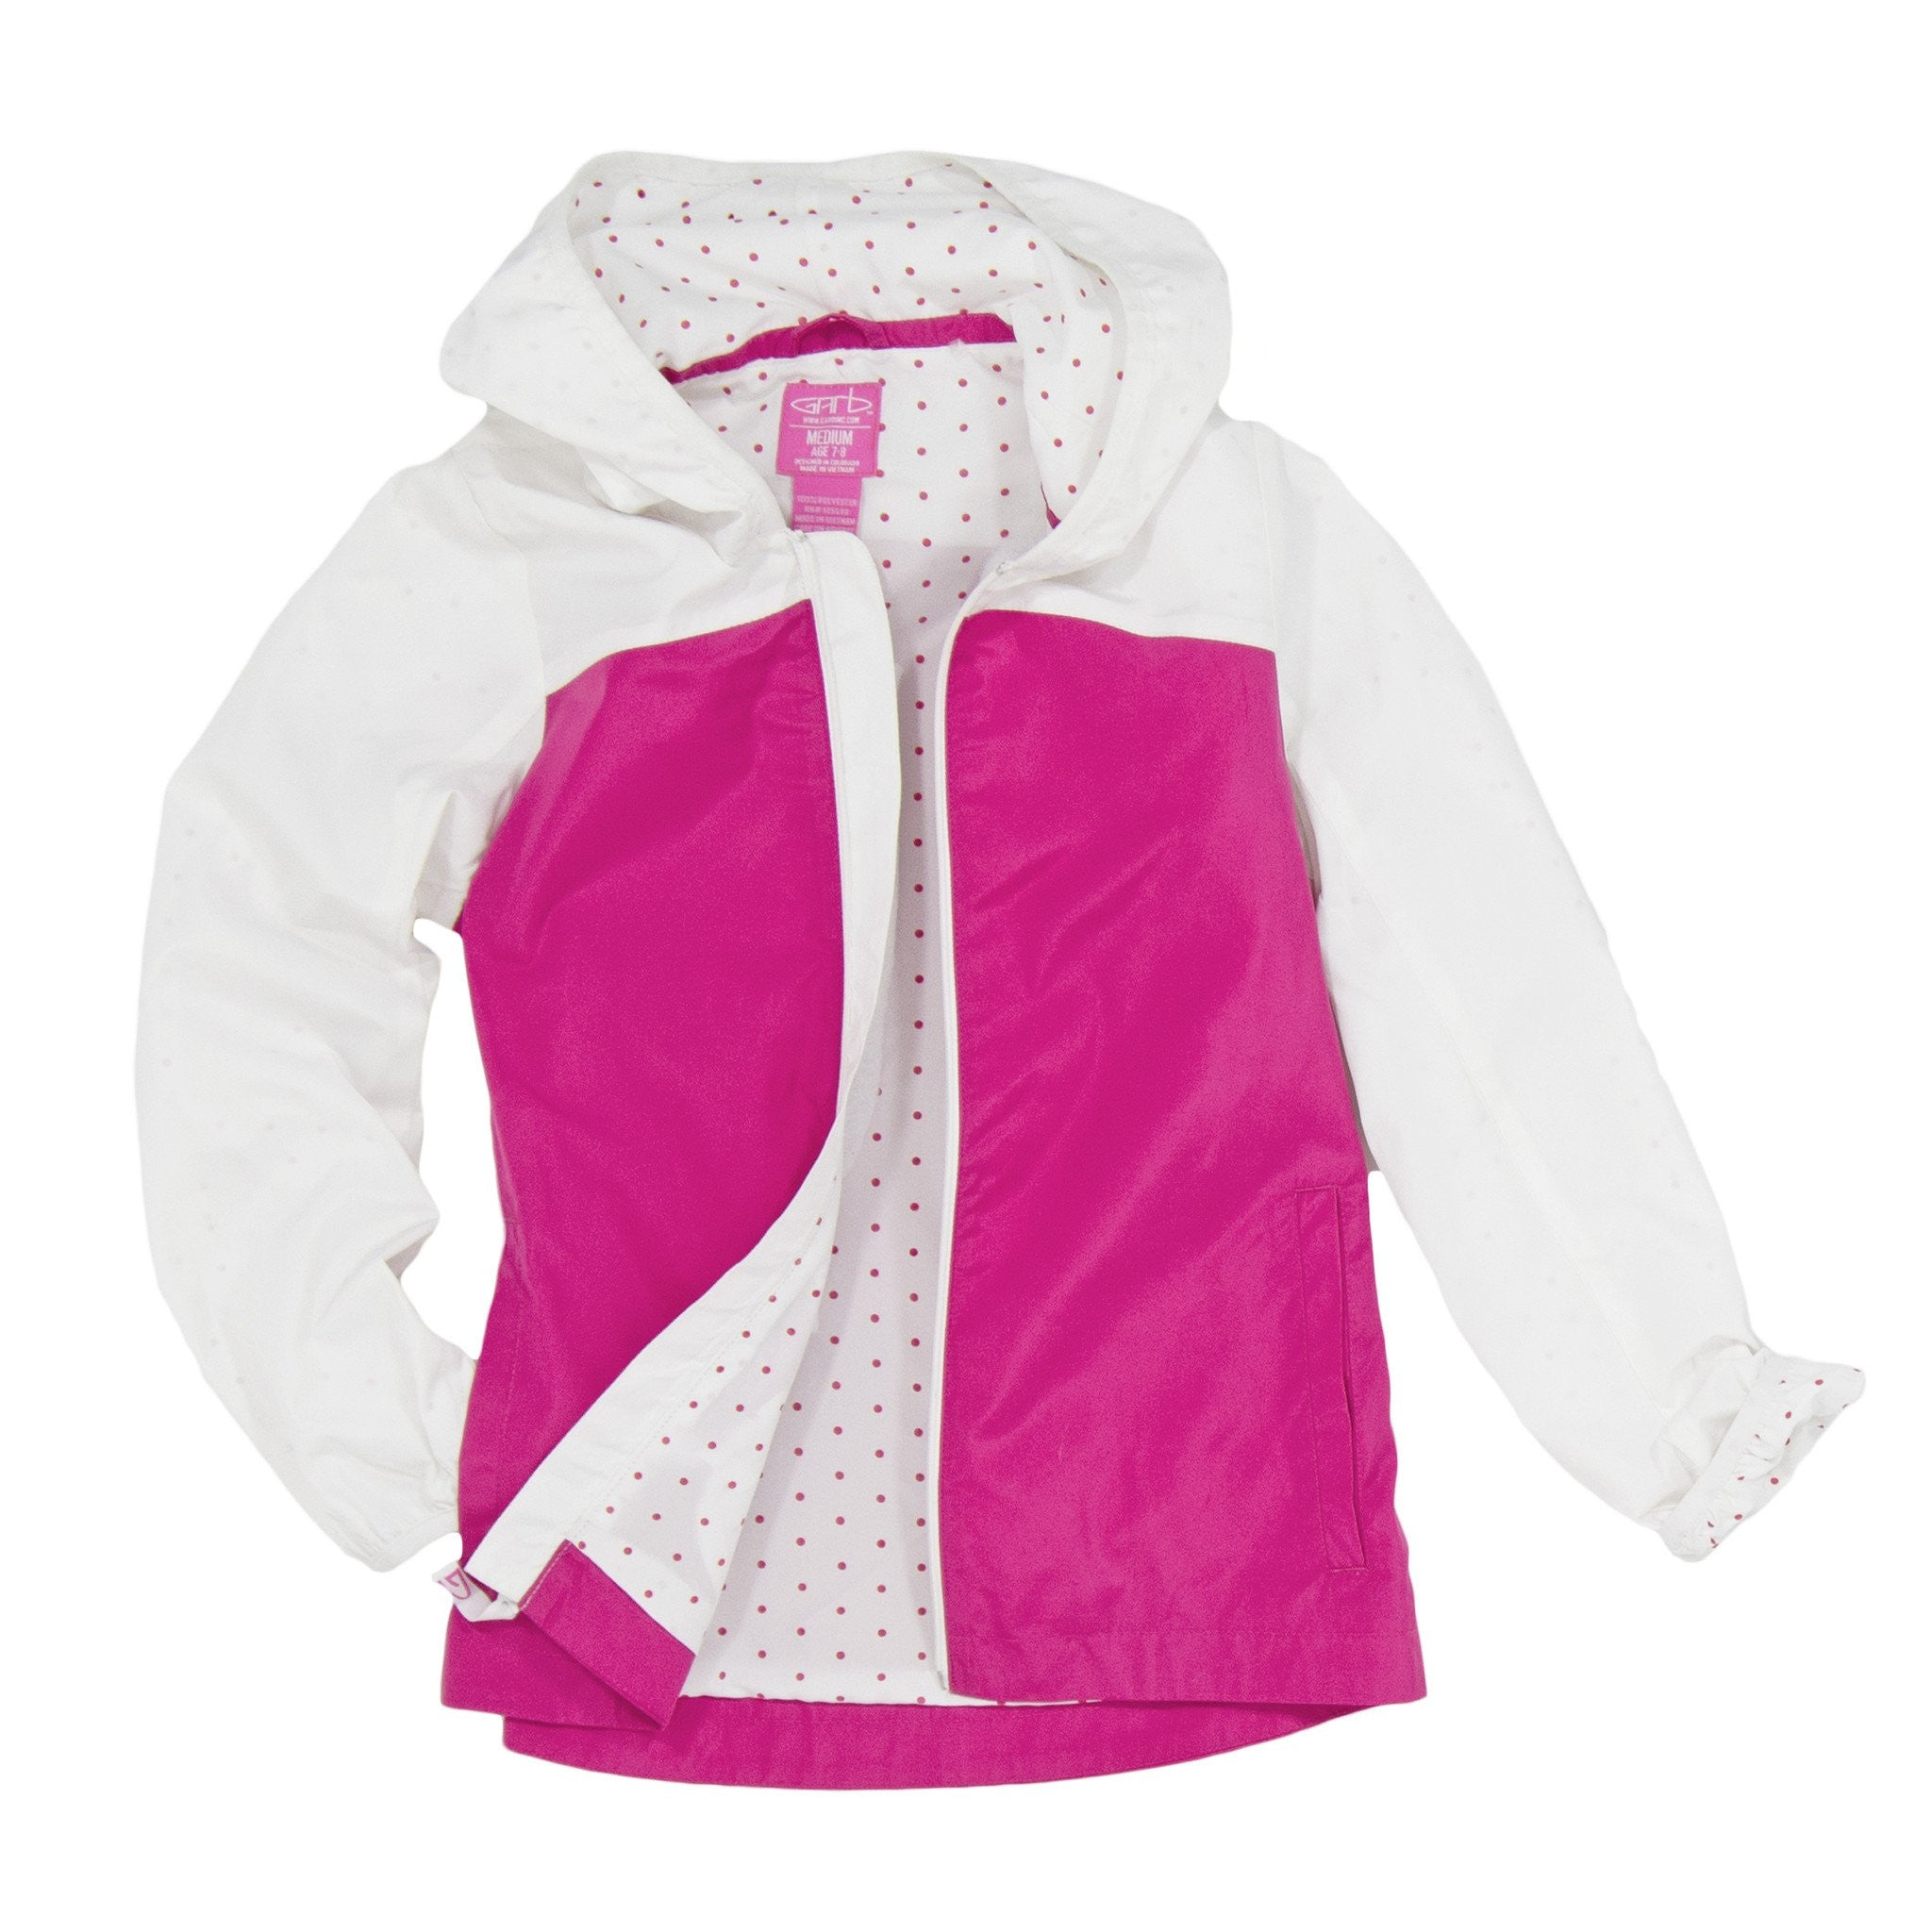 Brooklyn - Girl's Golf Jacket